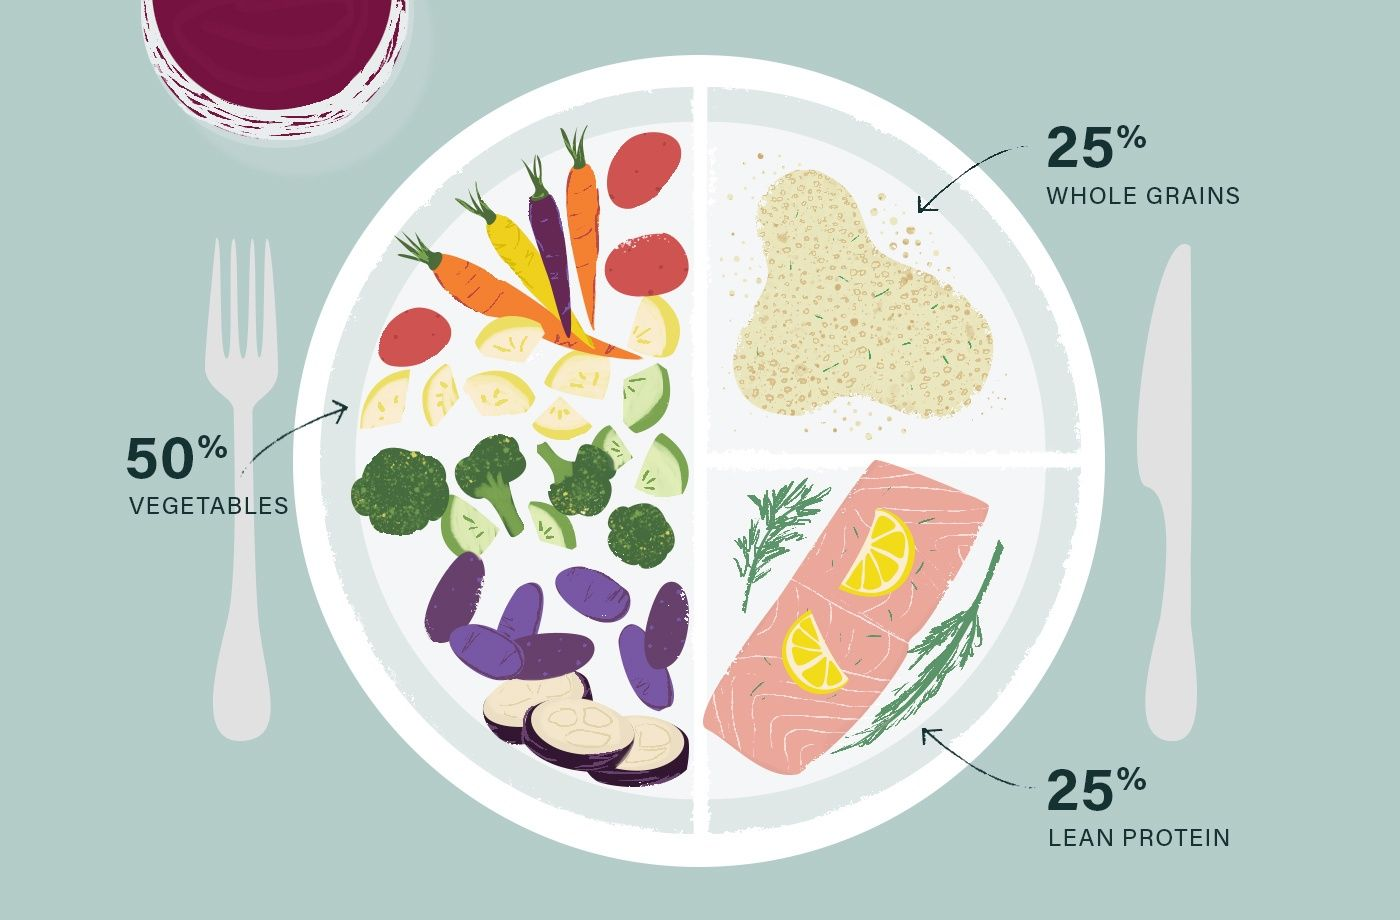 Here S What A Healthy Plate Looks Like On The Mediterranean Diet Well Good Healthy Plate Healthy Food Plate Diet Plate